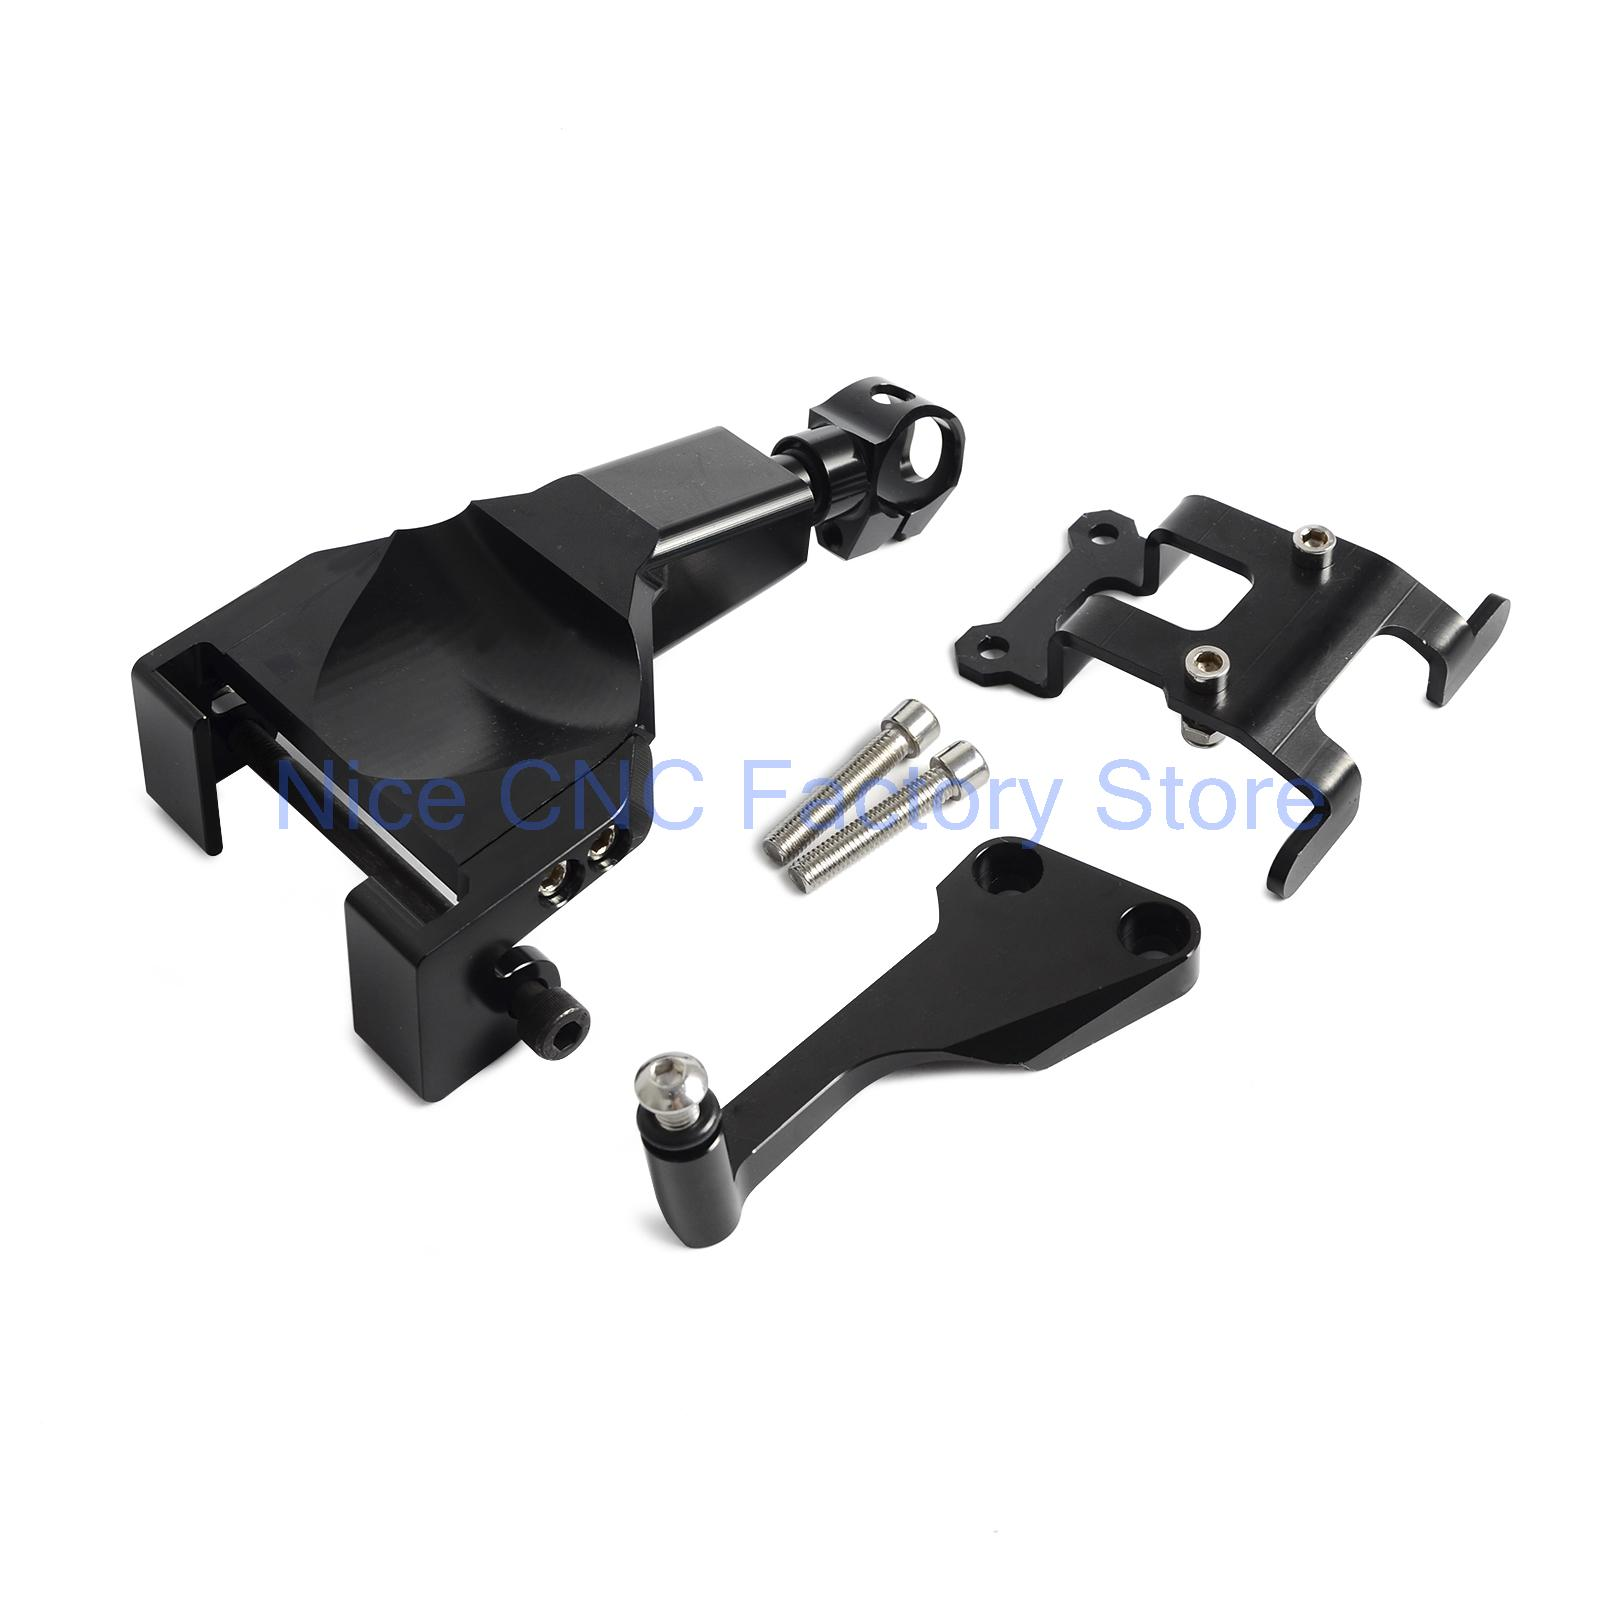 Black Motorcycle Stablizer Damper Mounting Bracket Kit For Yamaha MT-07 MT07 MOTO CAGE 2014 2015 2016 for yamaha mt 03 2015 2016 mt 25 2015 2016 mobile phone navigation bracket